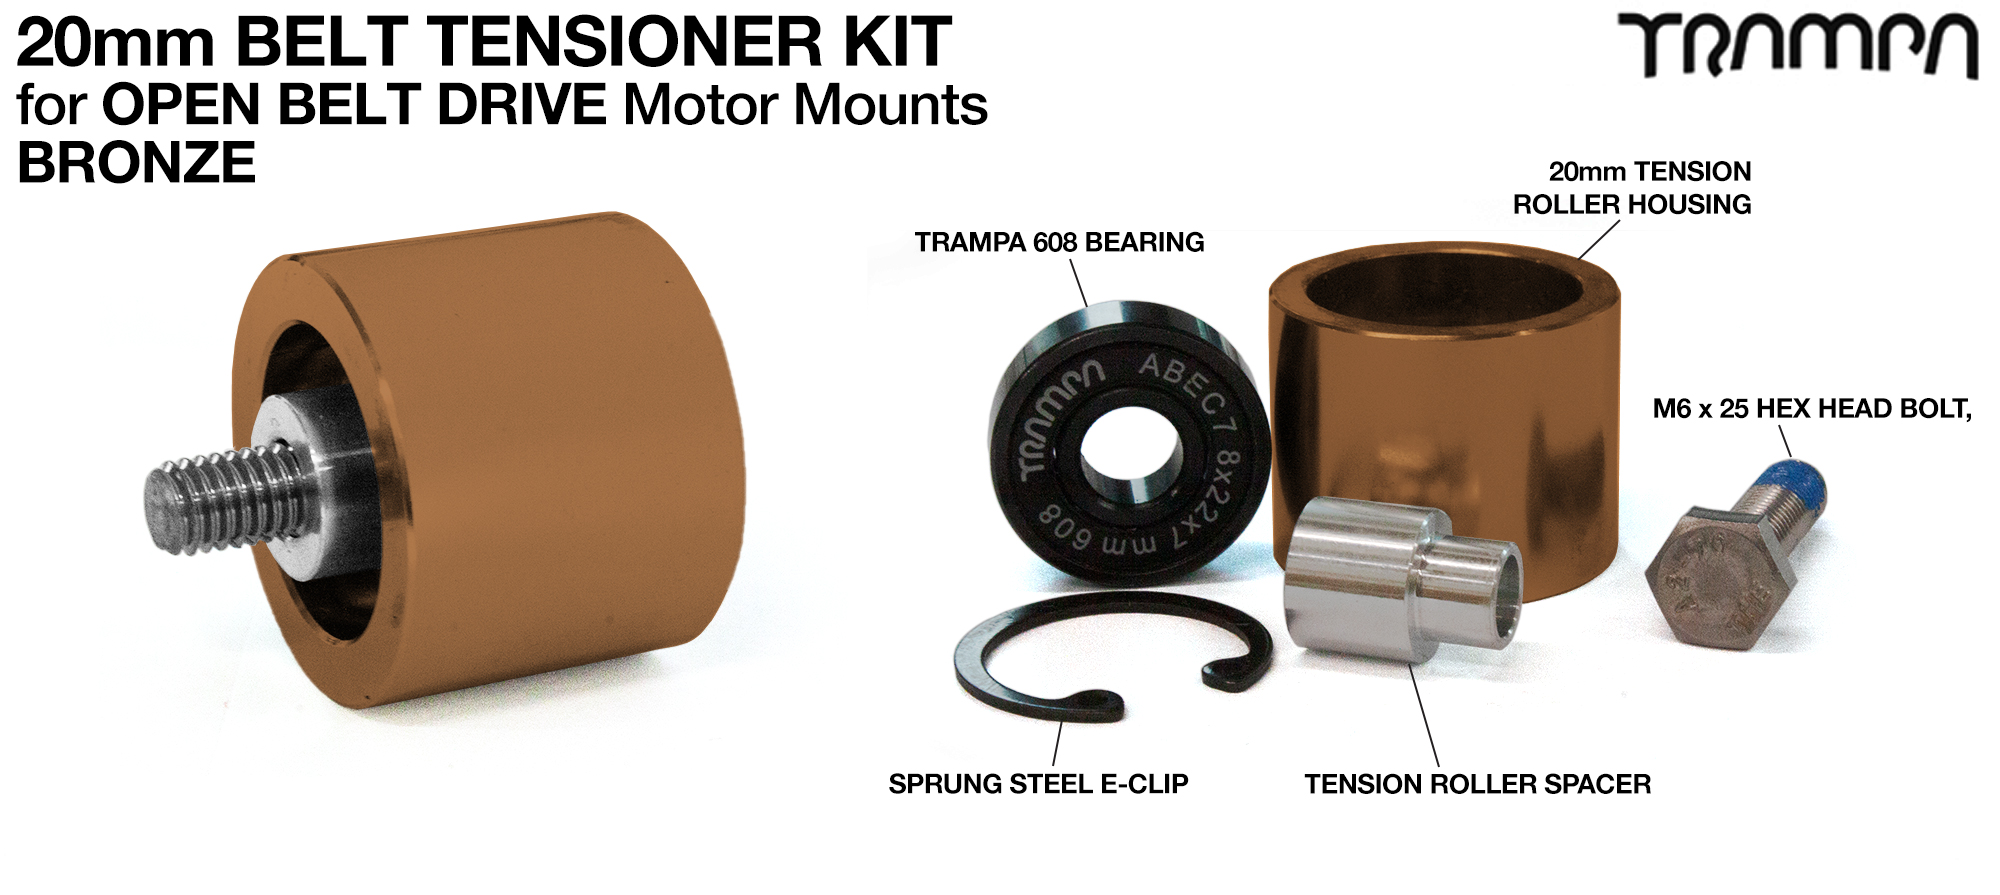 BRONZE OBD 20mm Belt Tensioner